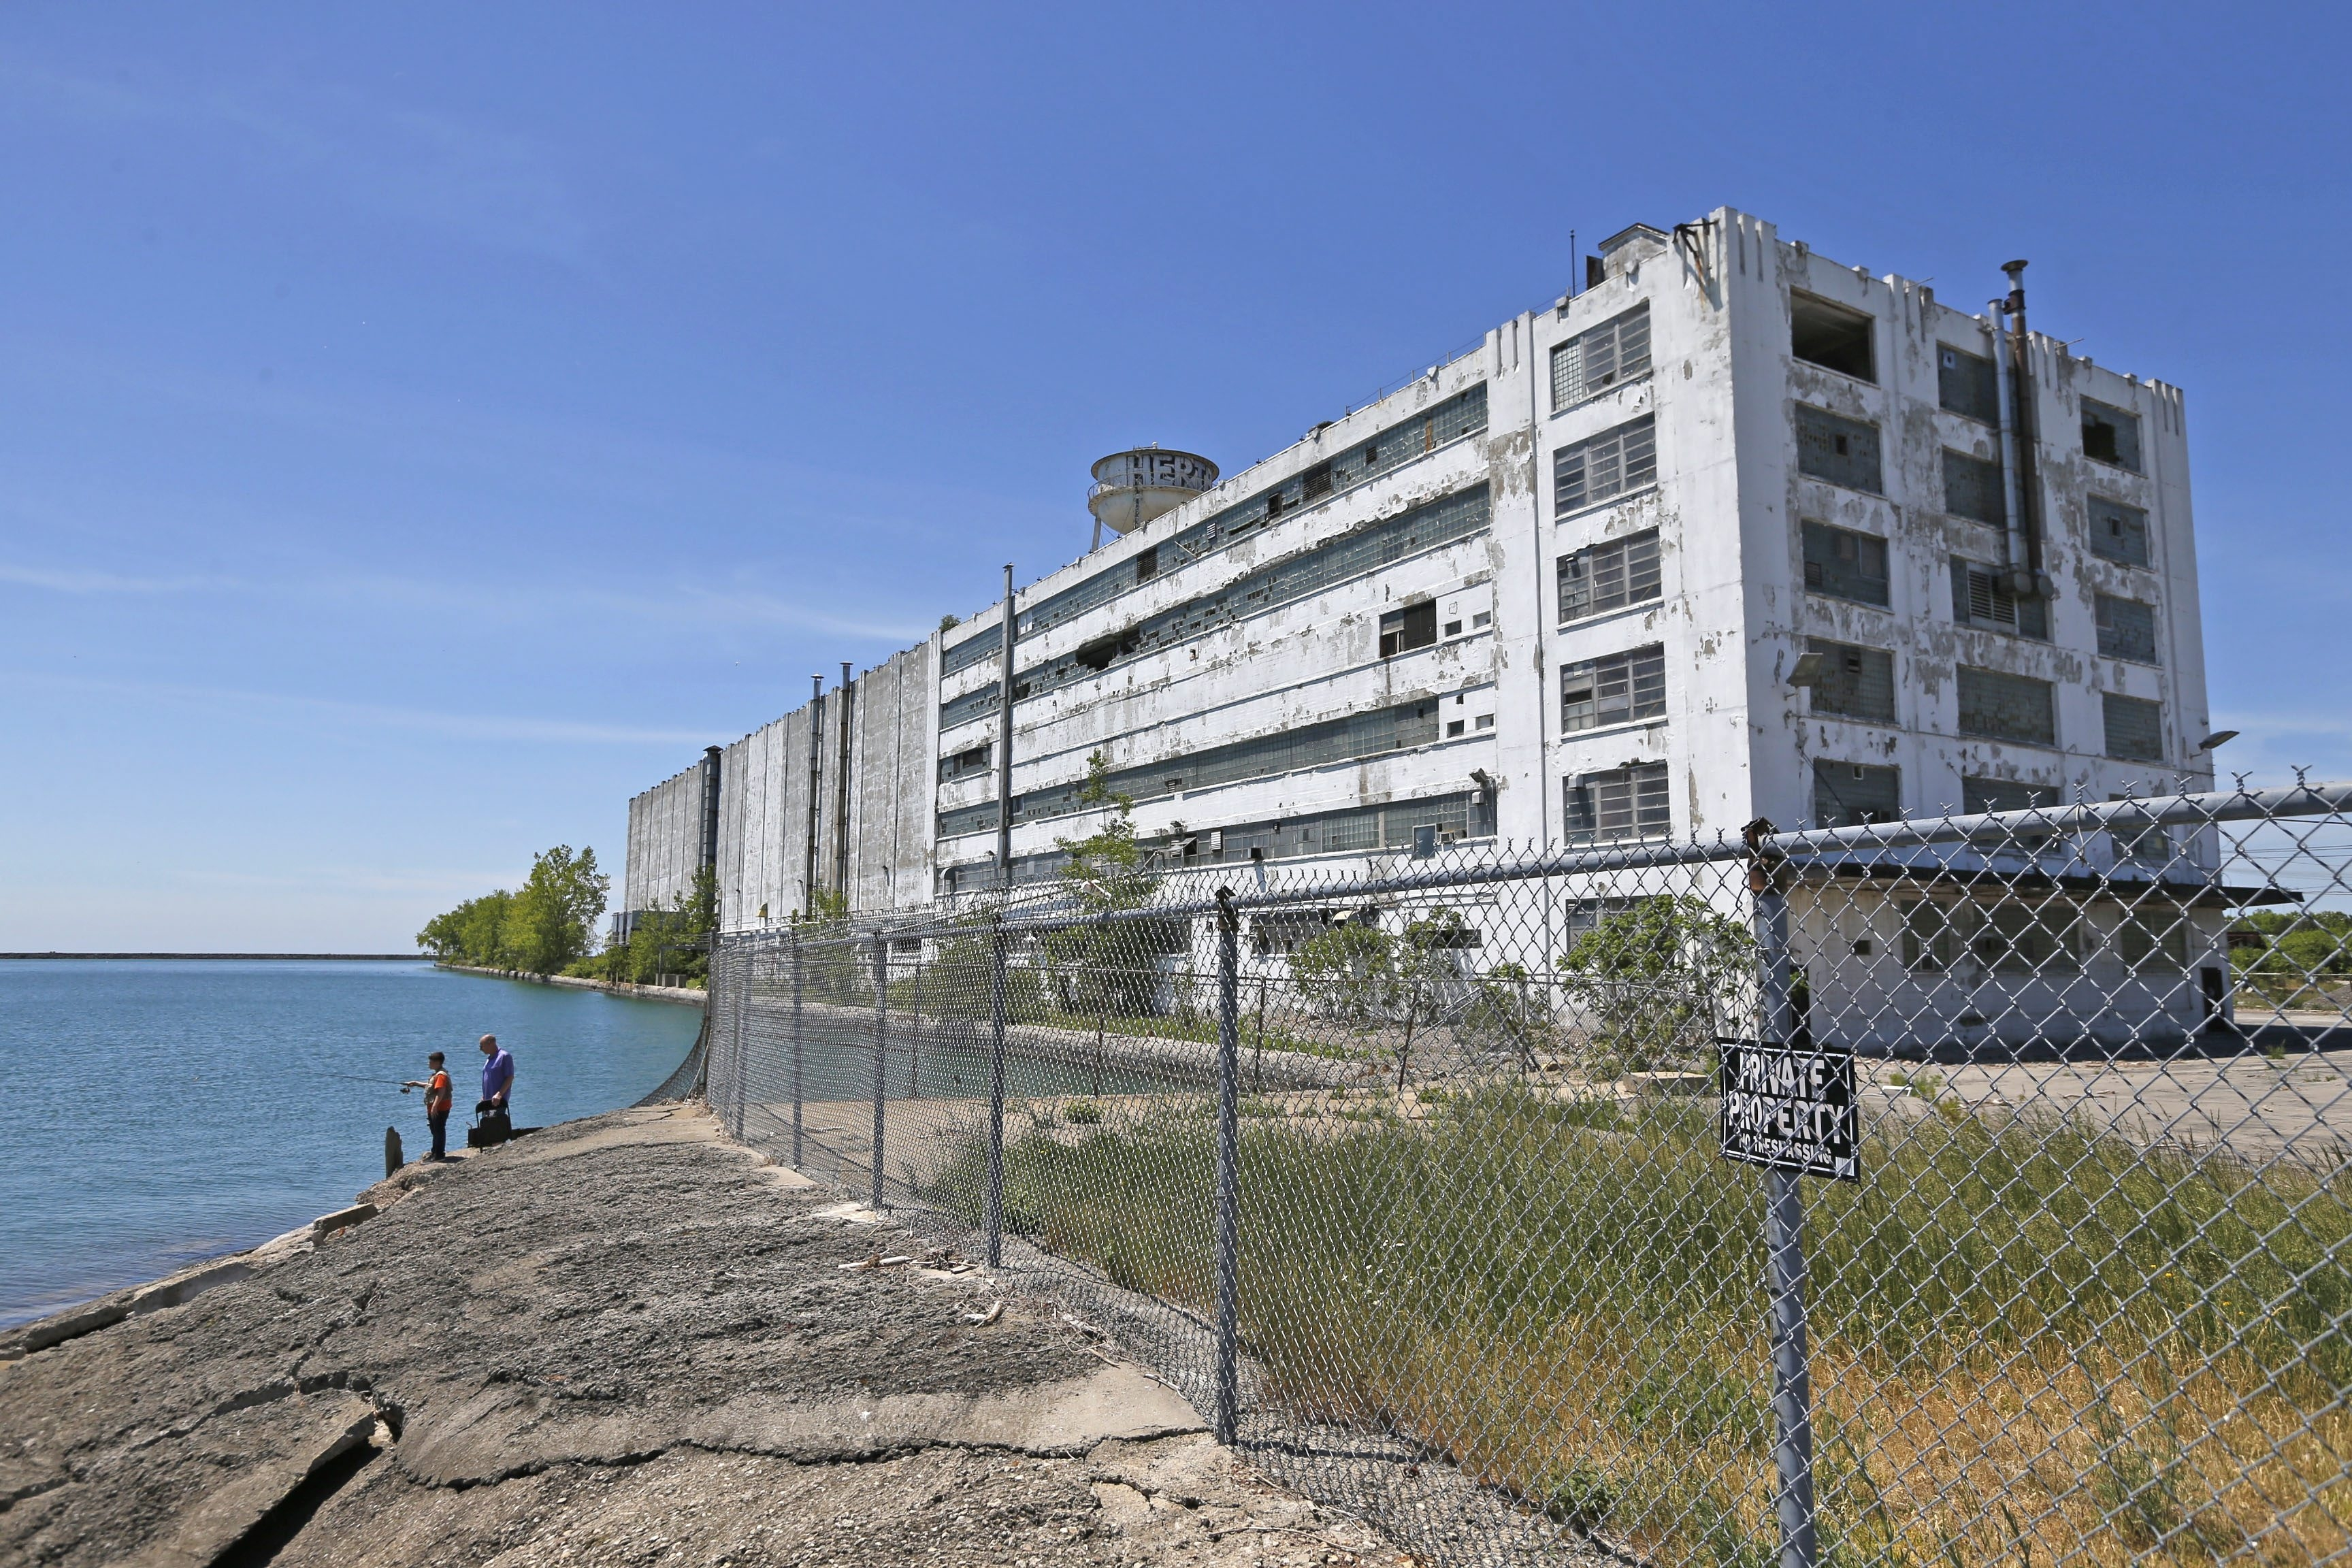 The decrepit Freezer Queen building is an unwelcome presence on a prime piece of Outer Harbor property.